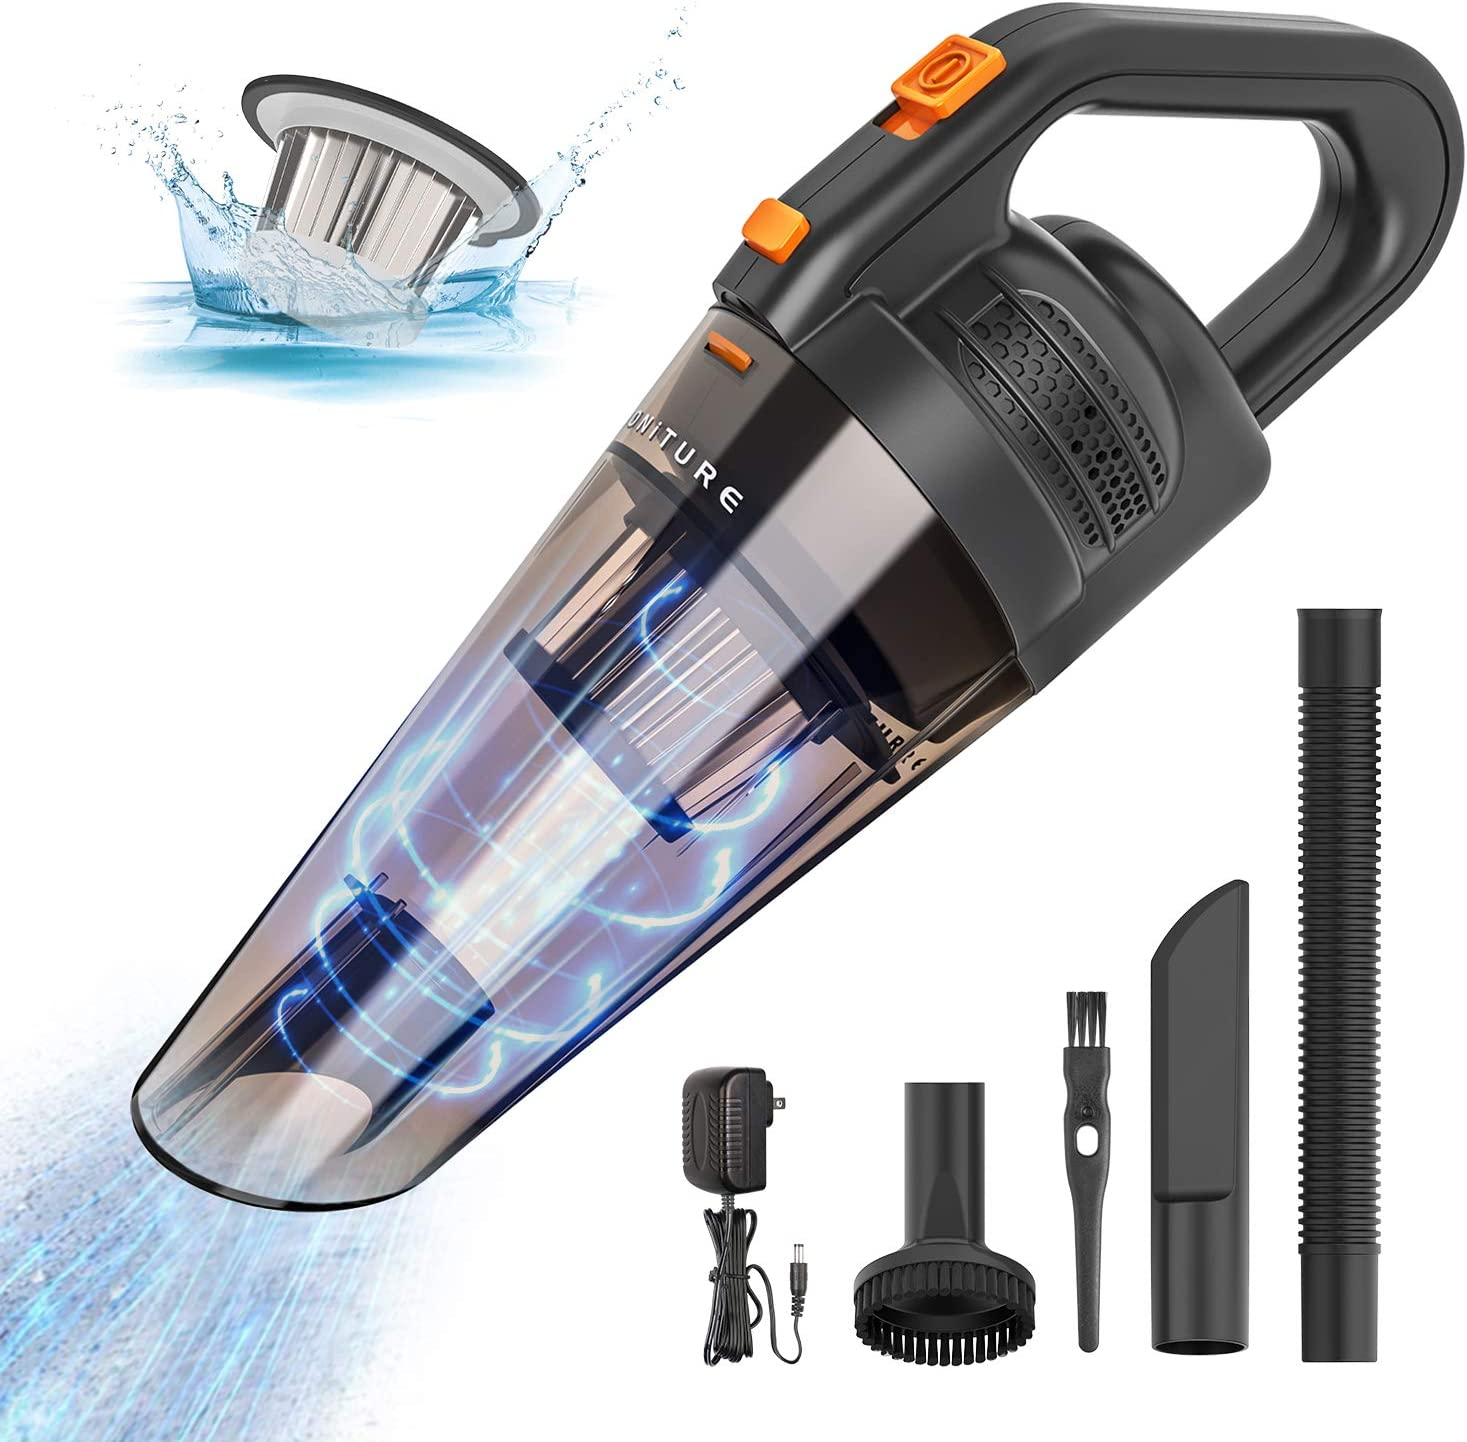 HONITURE Handheld Vacuum Cordless 8000PA Powerful Suction Car Vacuum Cleaner Portable Hand Vac Rechargeable Vacuum Cleaner with LED Light for Home and Car Cleaning